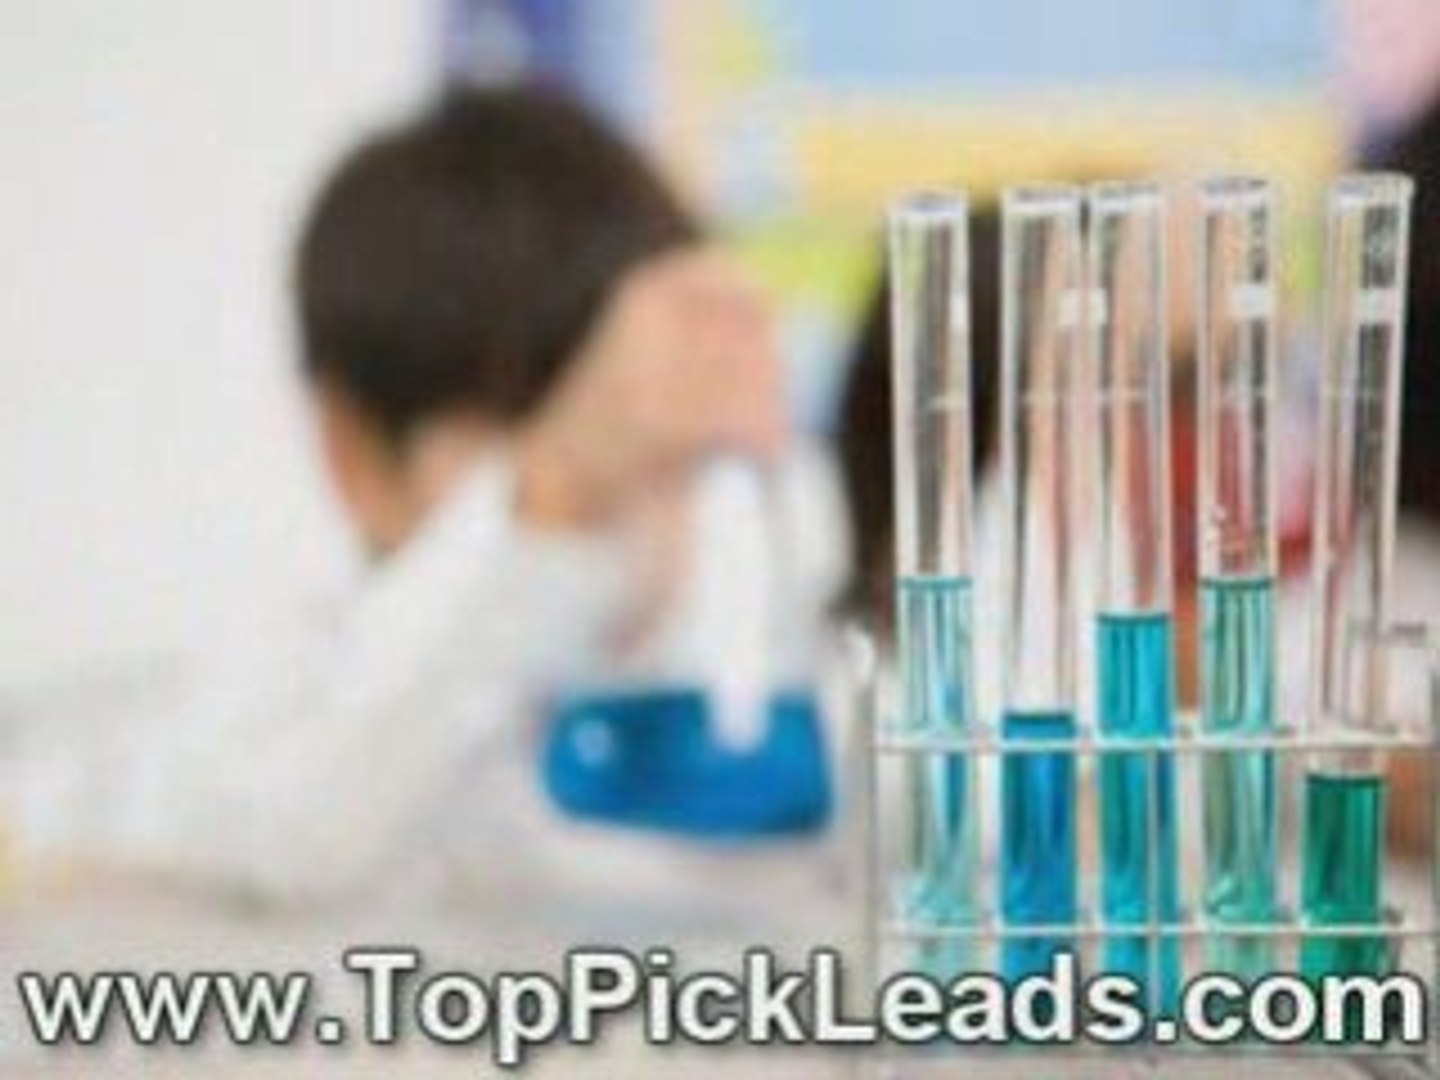 Insurance Leads and Health Insurance leads Provider reviews